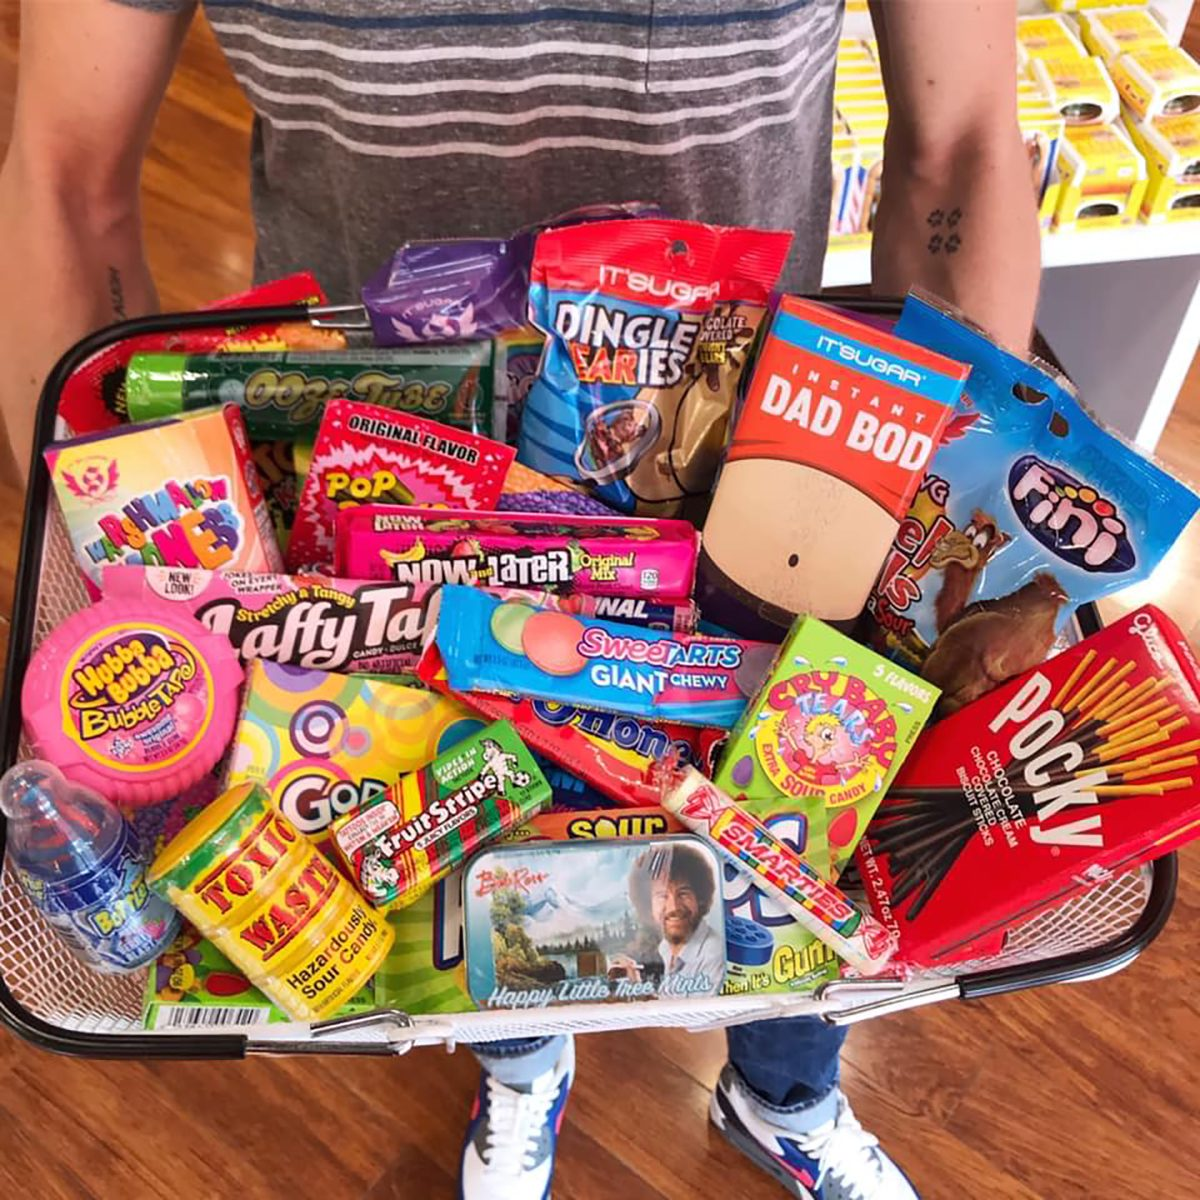 IT'SUGAR, The best candy shop in every state